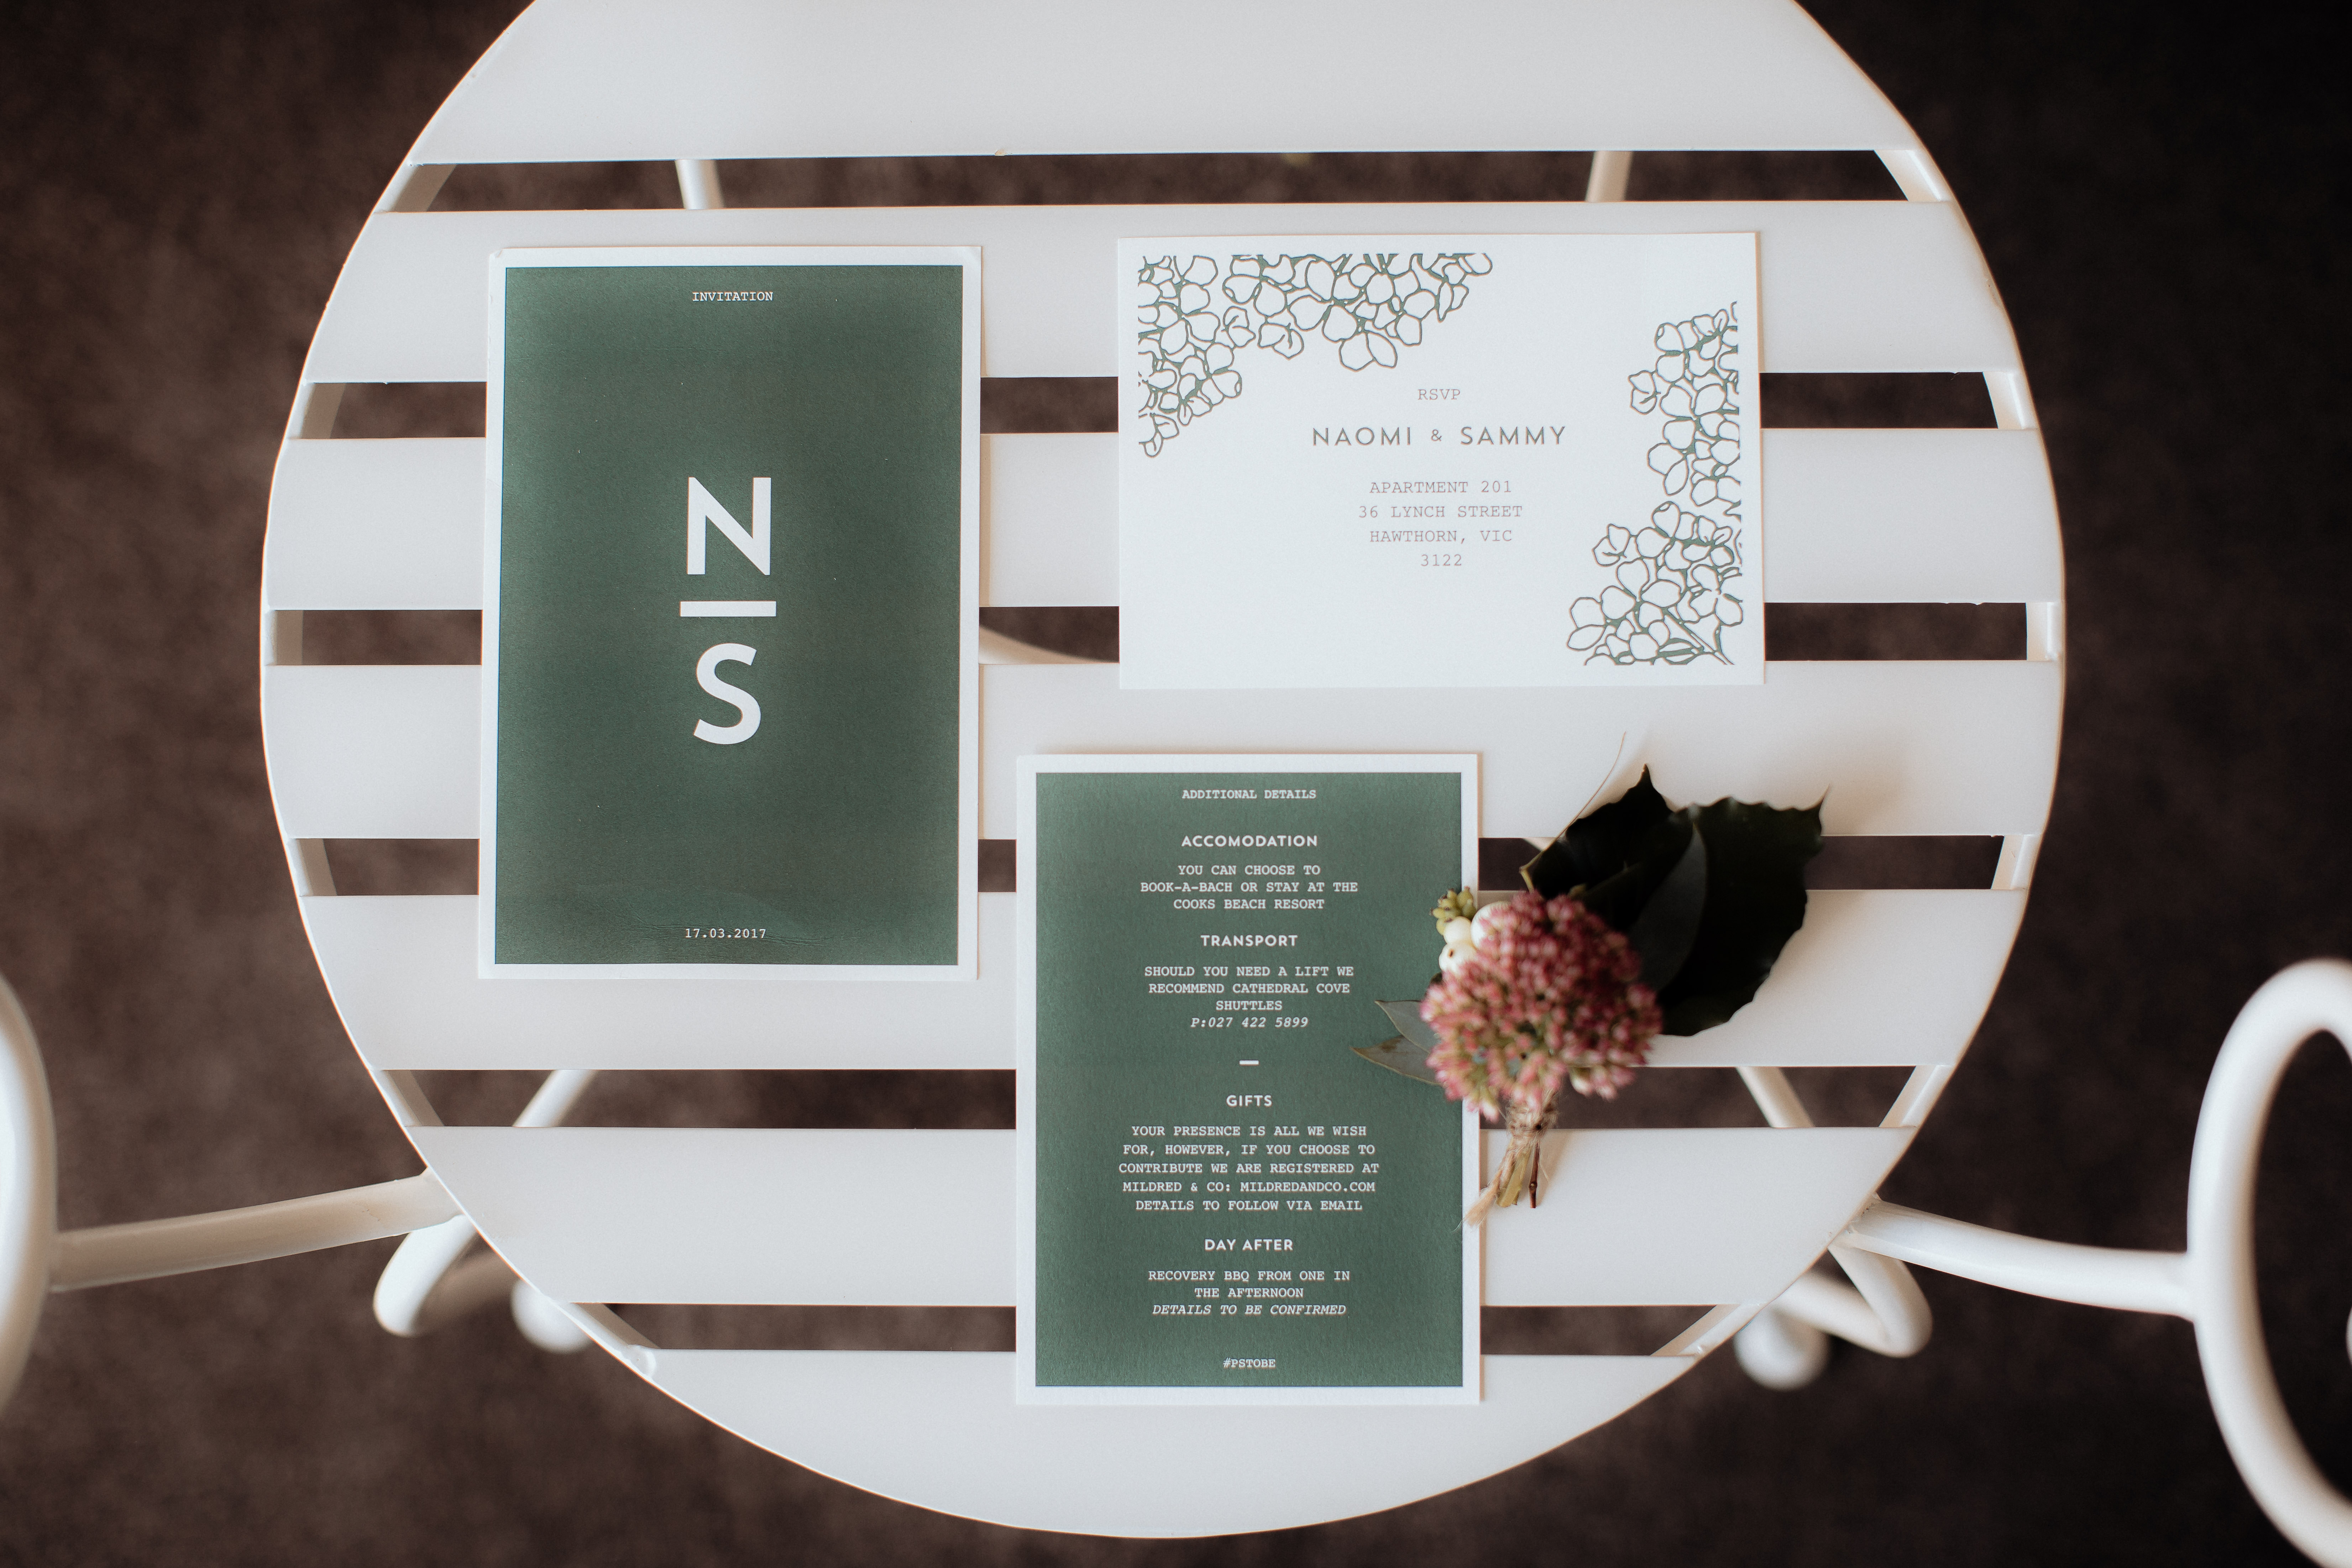 Real Wedding: Naomi & Sammy - Photography by Chasewild